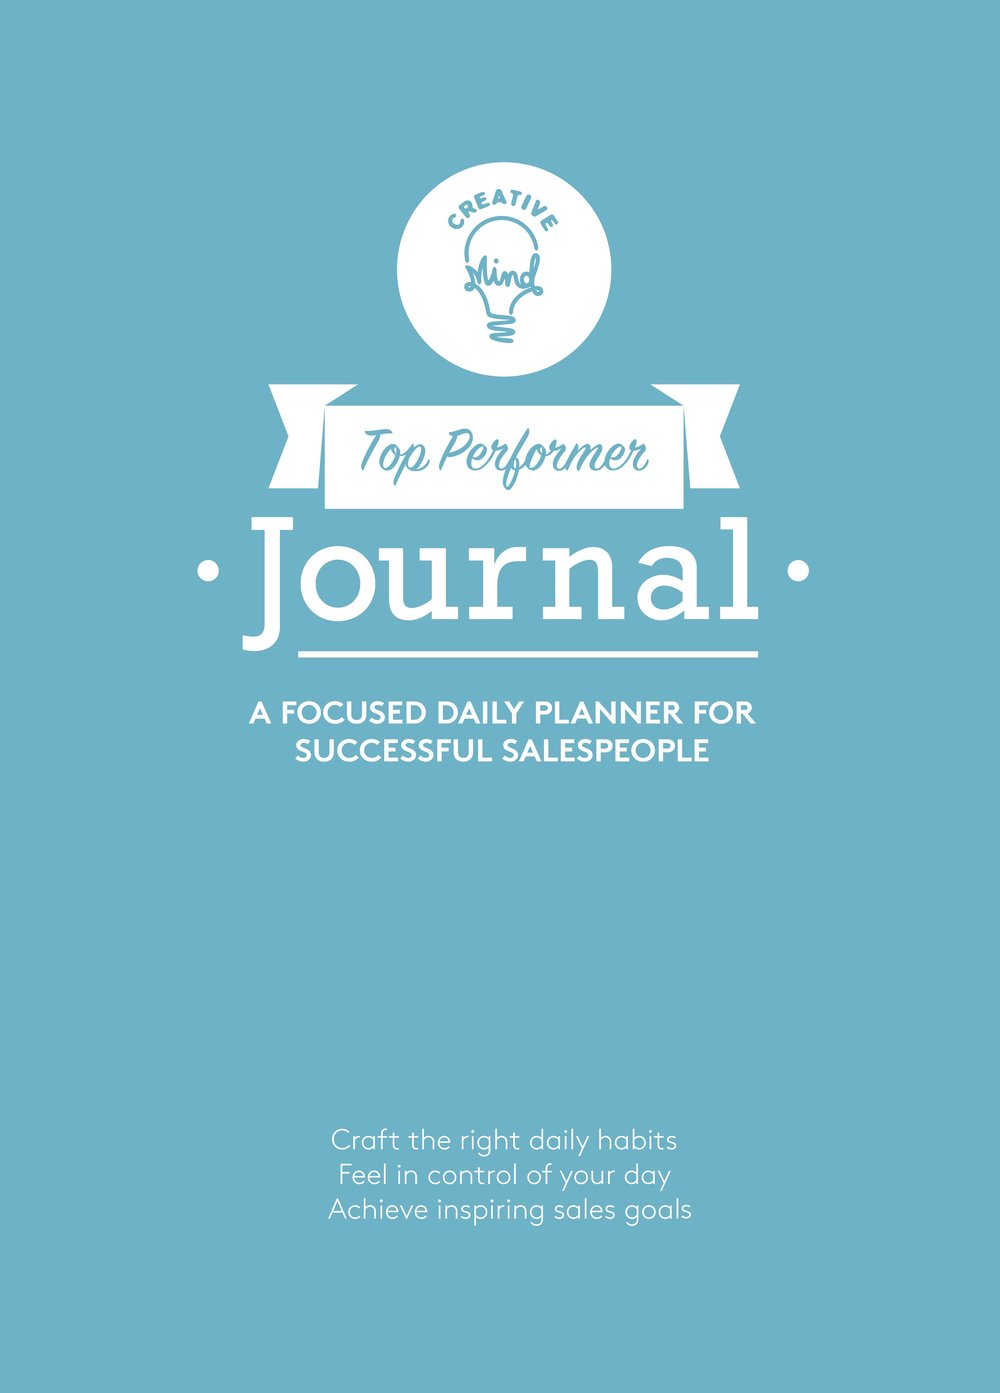 Top Performer Journal_Front cover copy 2.jpg